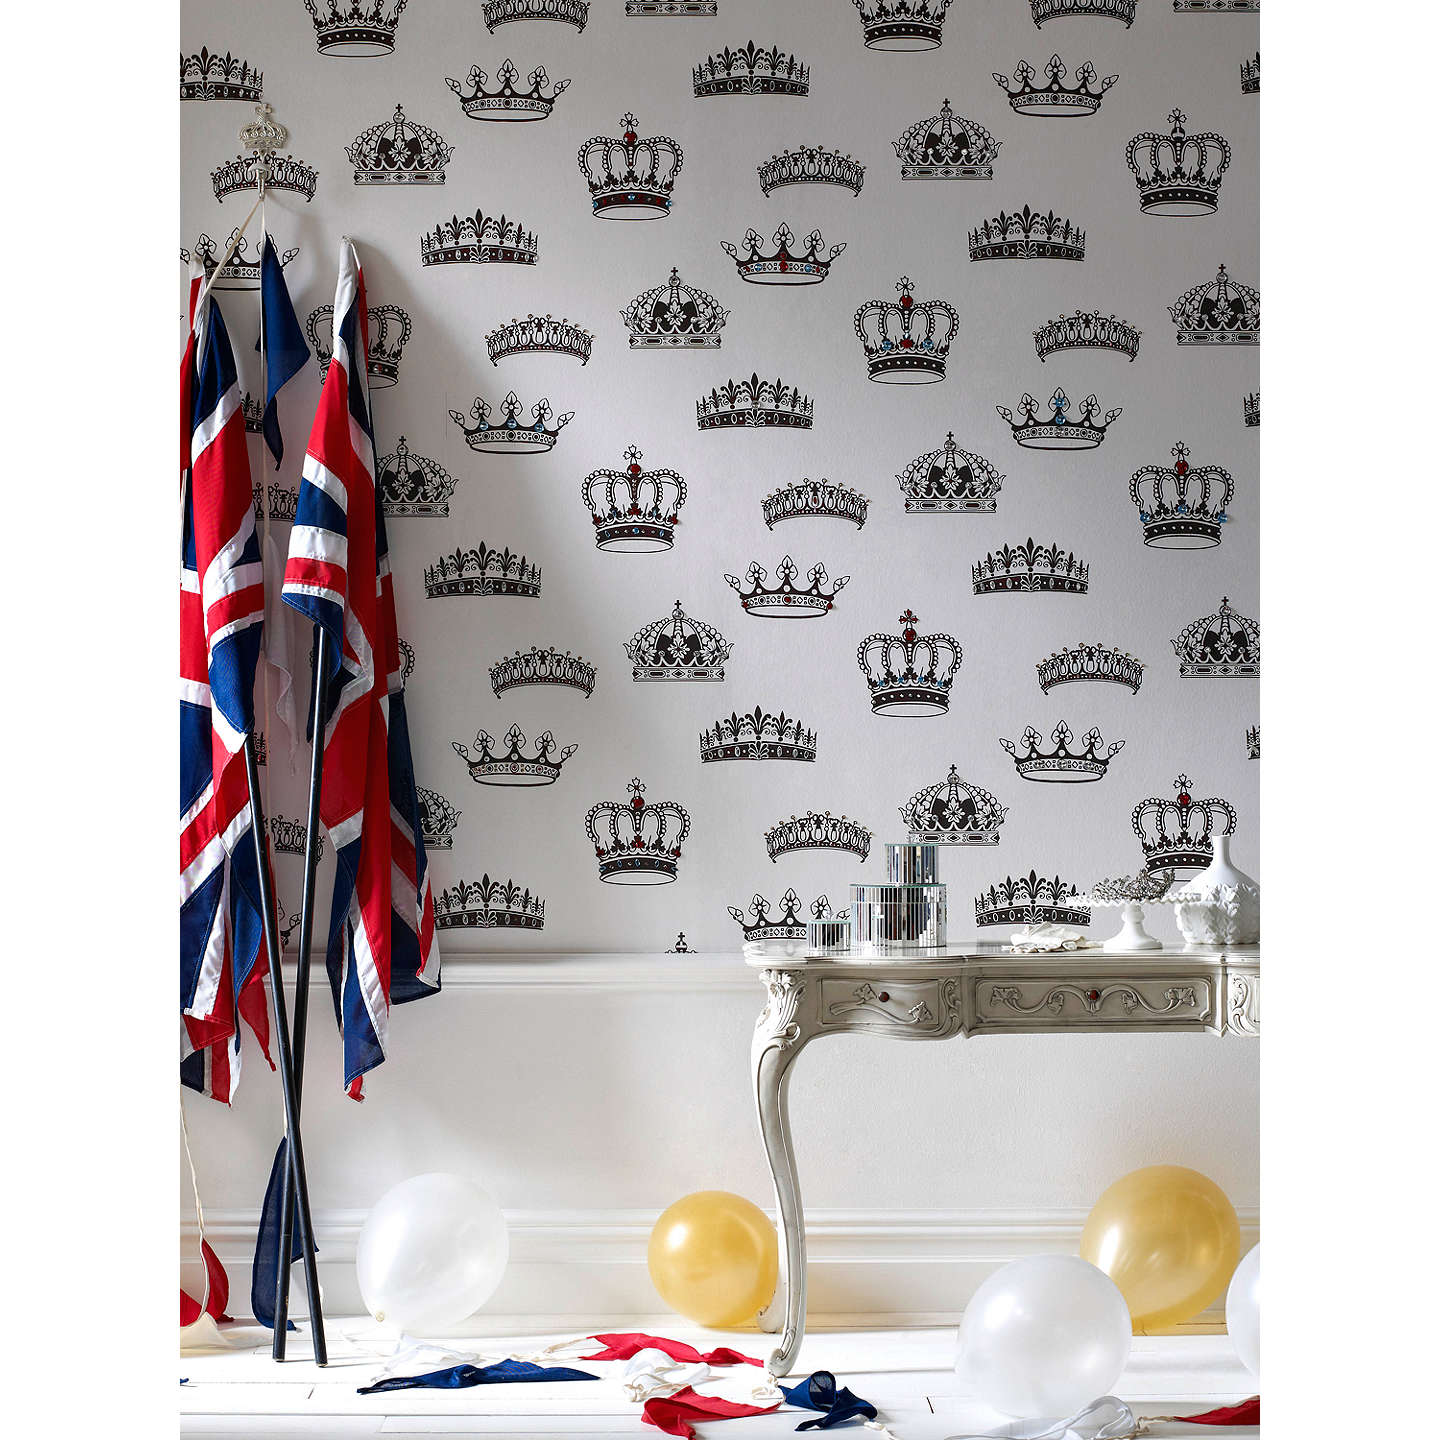 BuyGraham & Brown Crowns & Coronets Wallpaper, Black/White Online at johnlewis.com